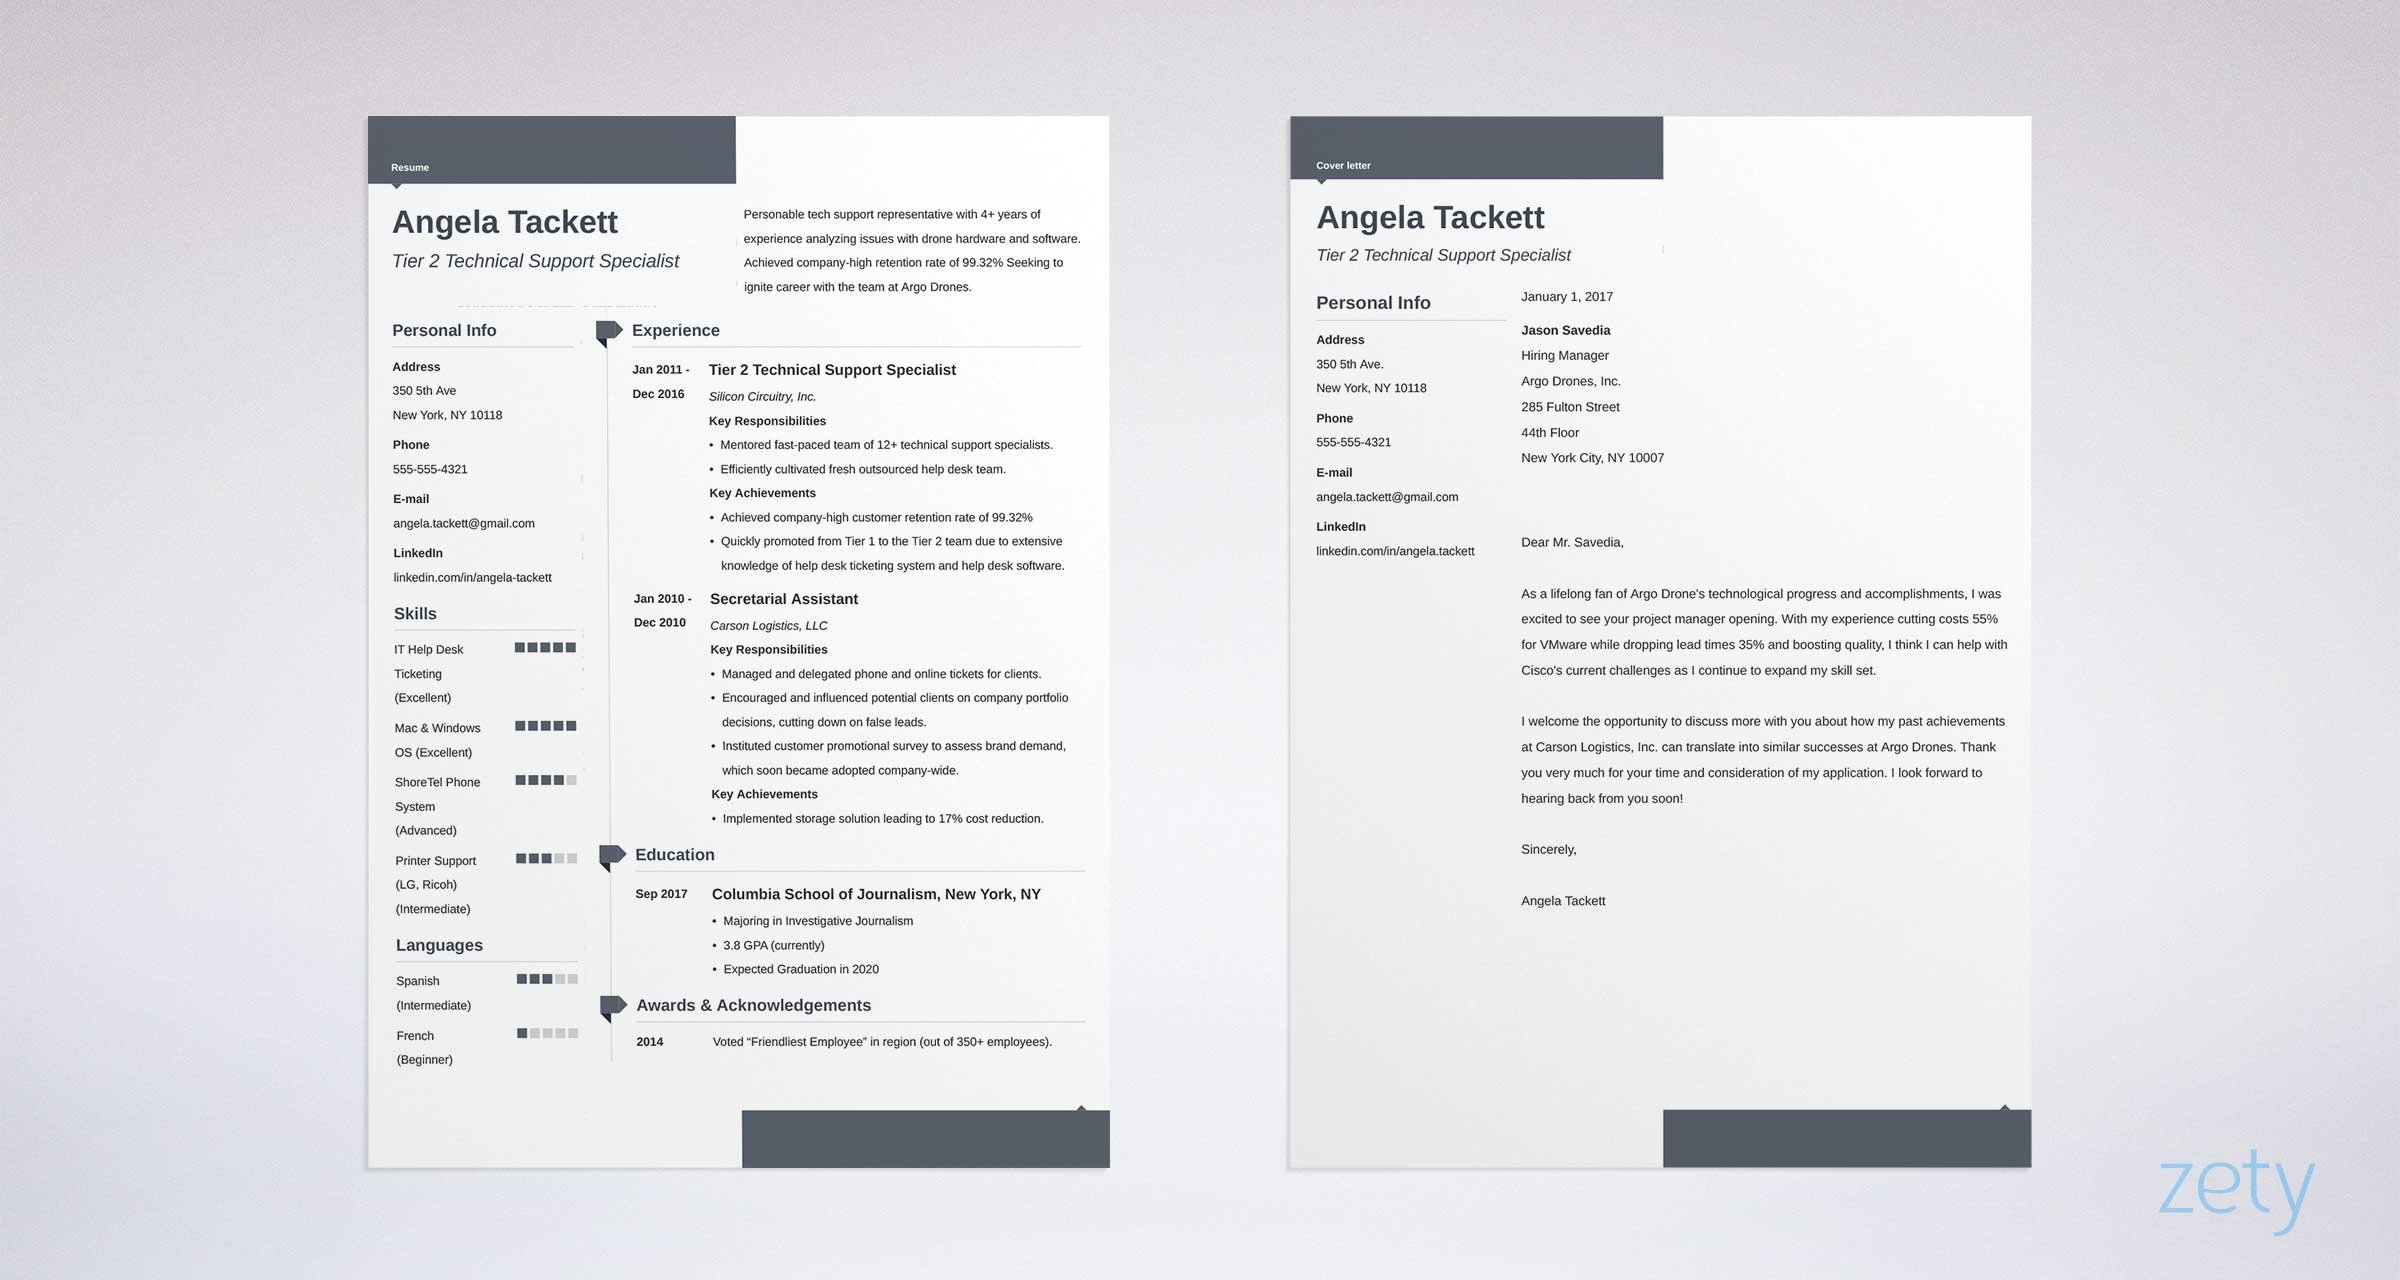 teacher resume examples templates skills tips free and job description match matching set Resume Free Resume And Job Description Match